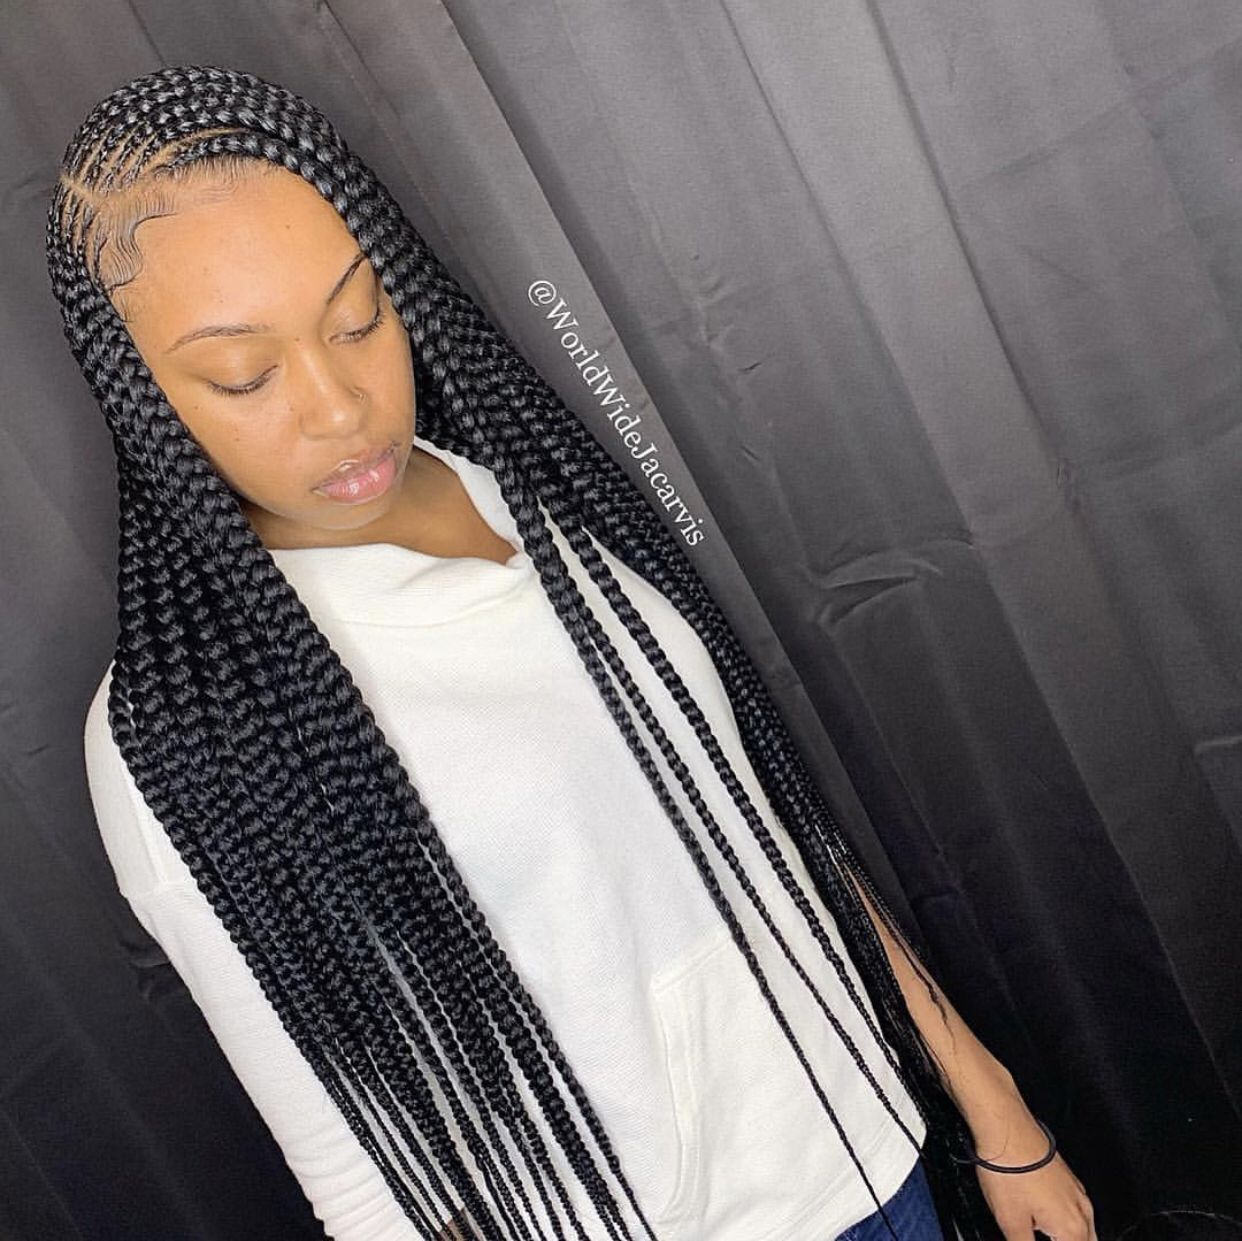 In Love W These Braids Strapless Dress Hairstyles Black Girl Braided Hairstyles African Braids Hairstyles